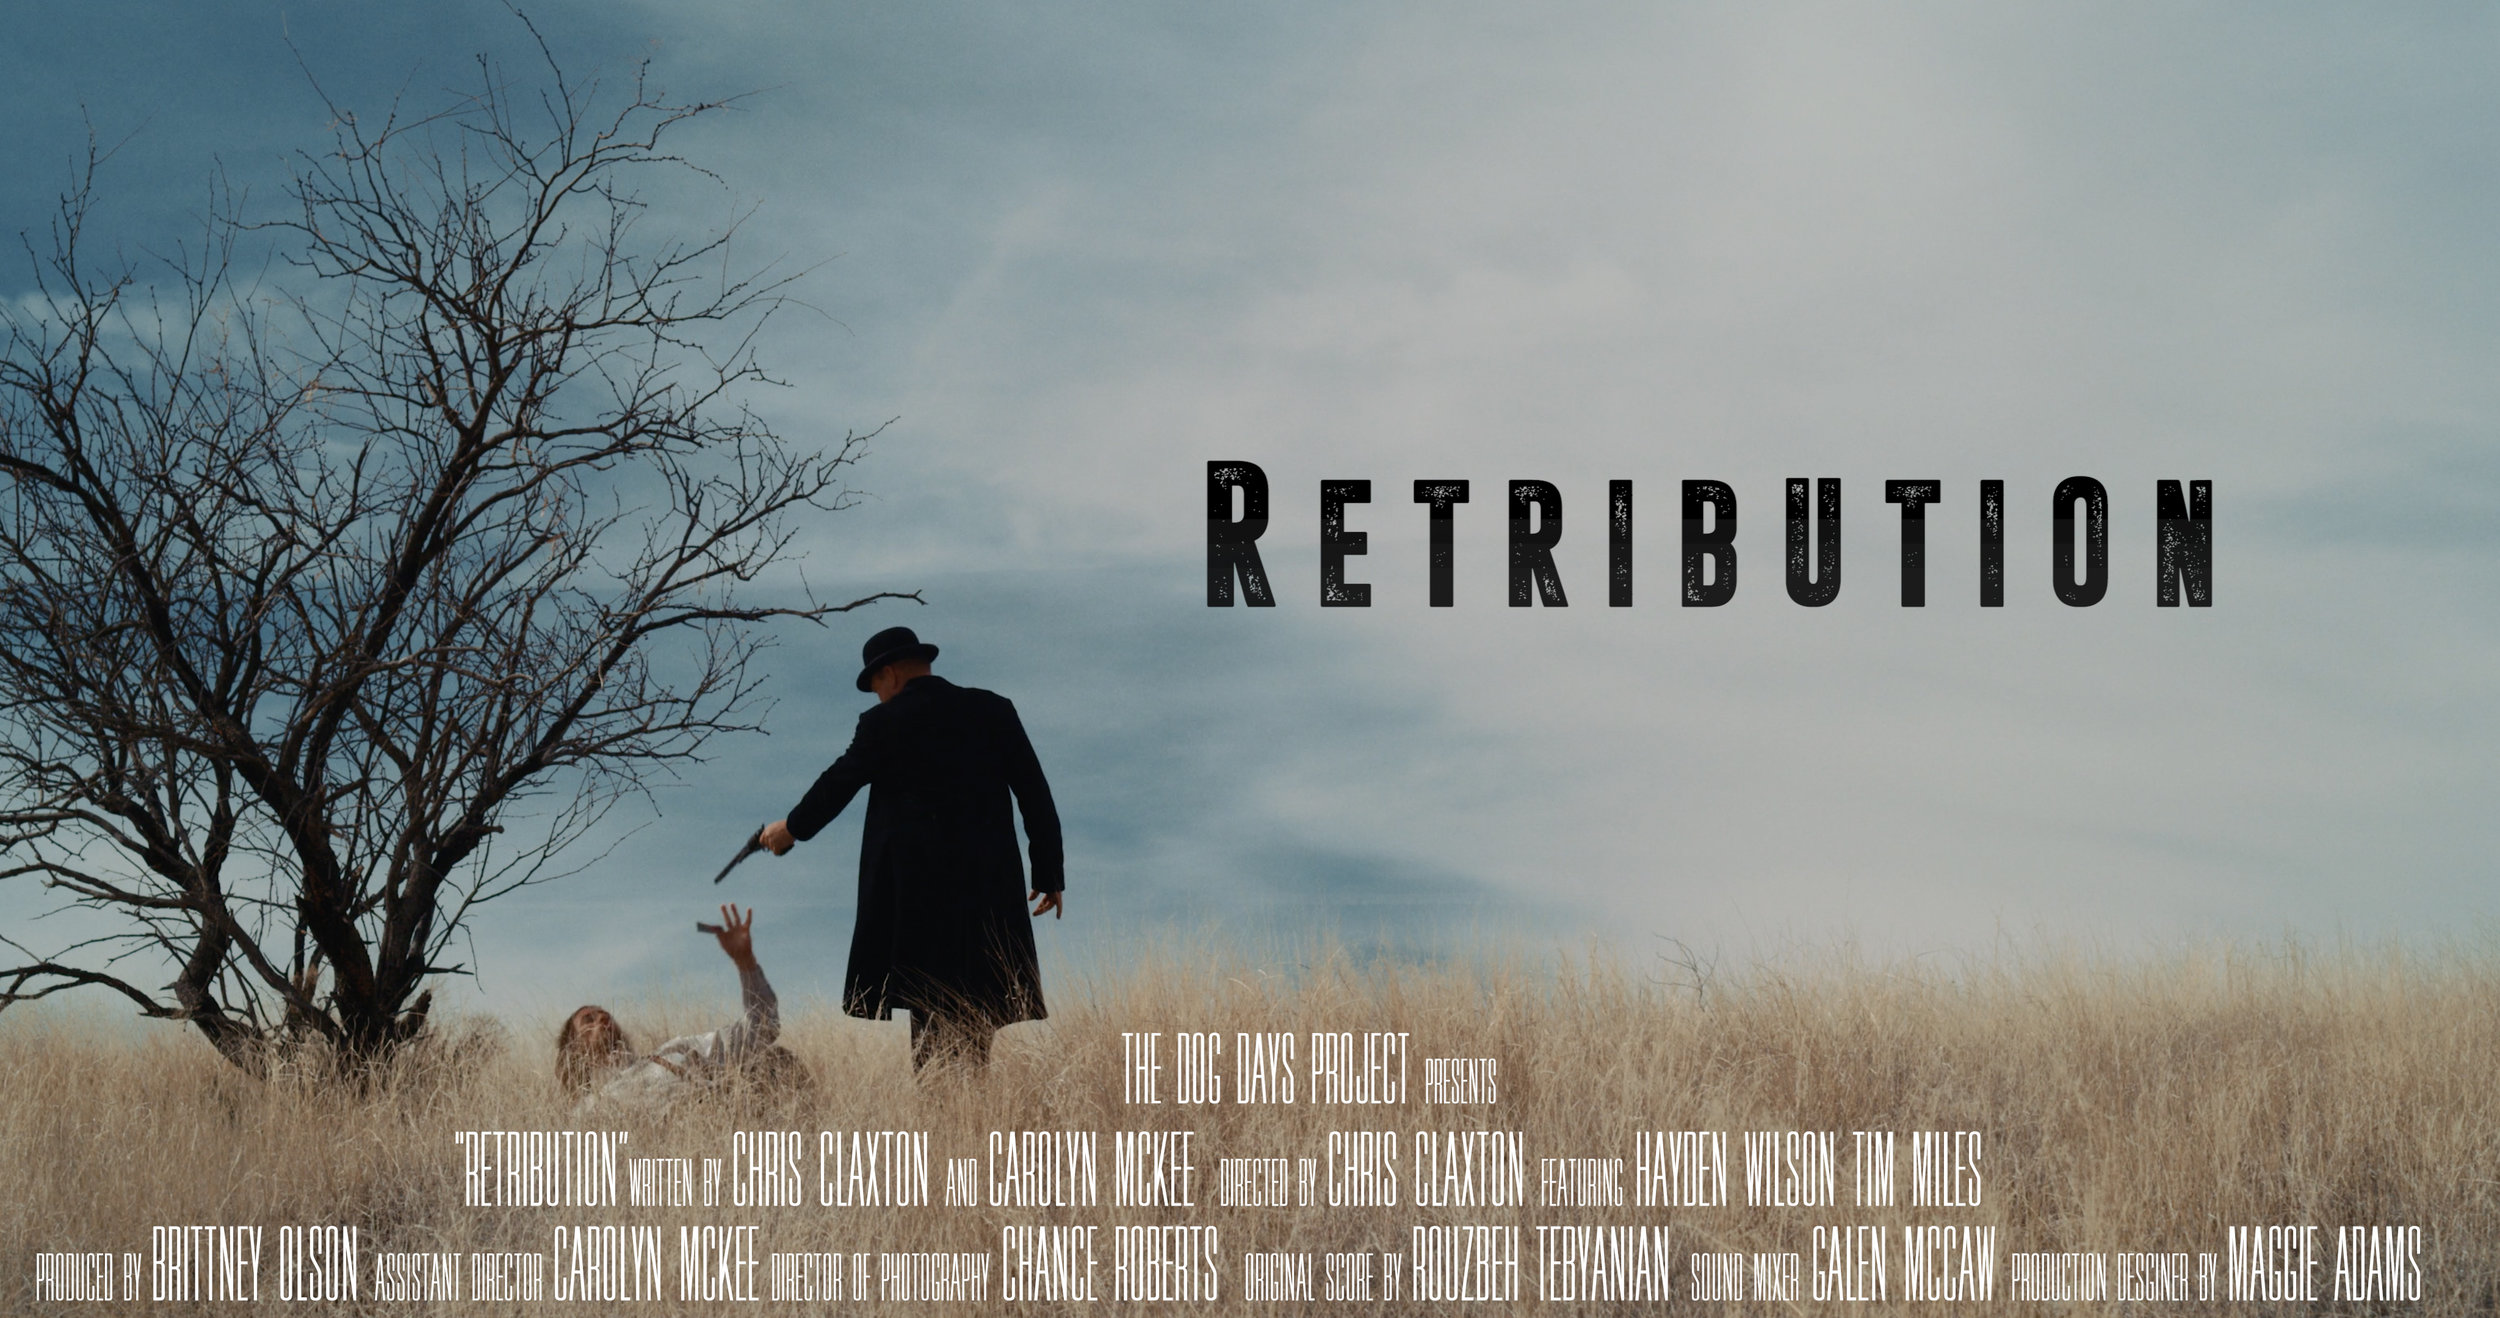 Retribution poster 2:20.jpg